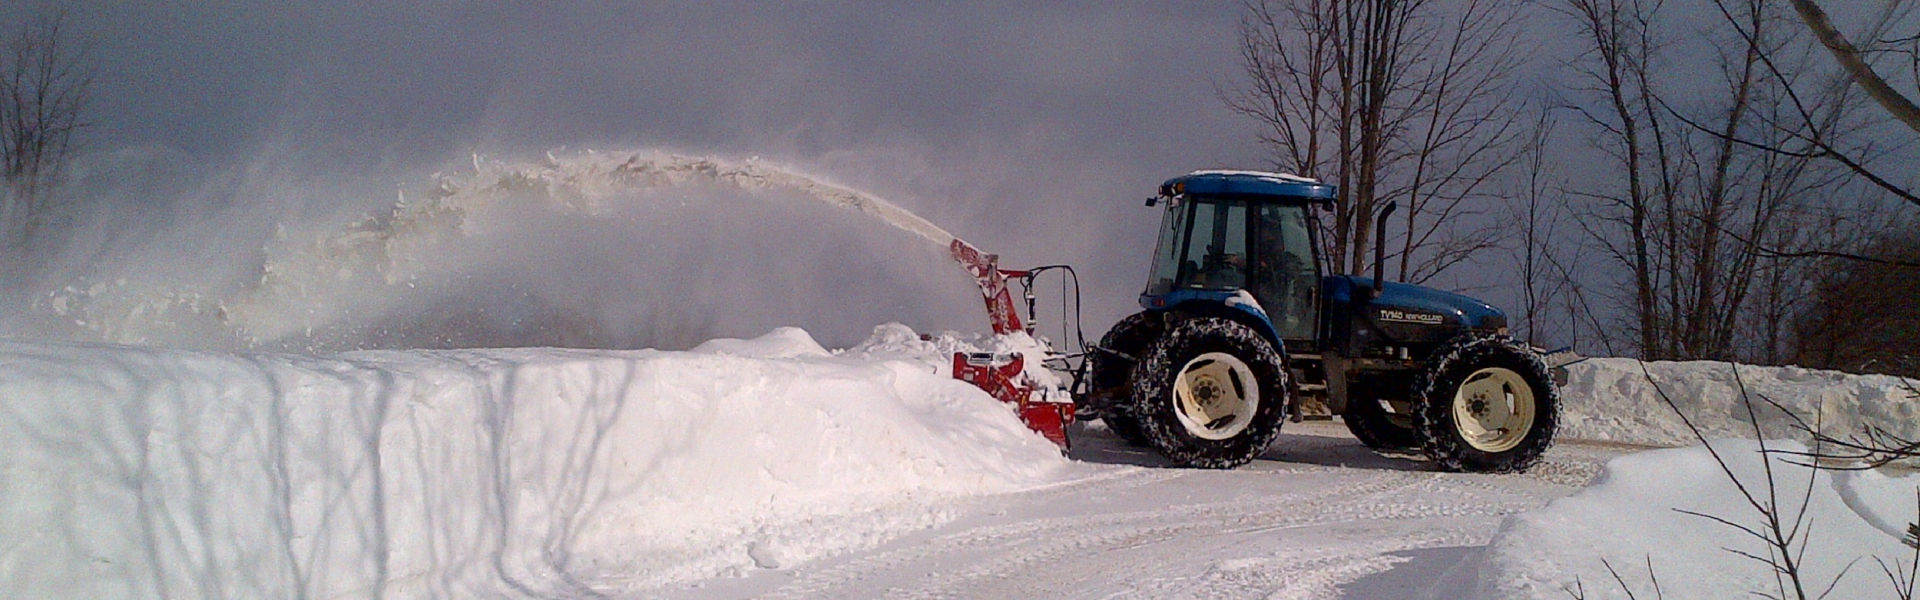 snow removal in green bay